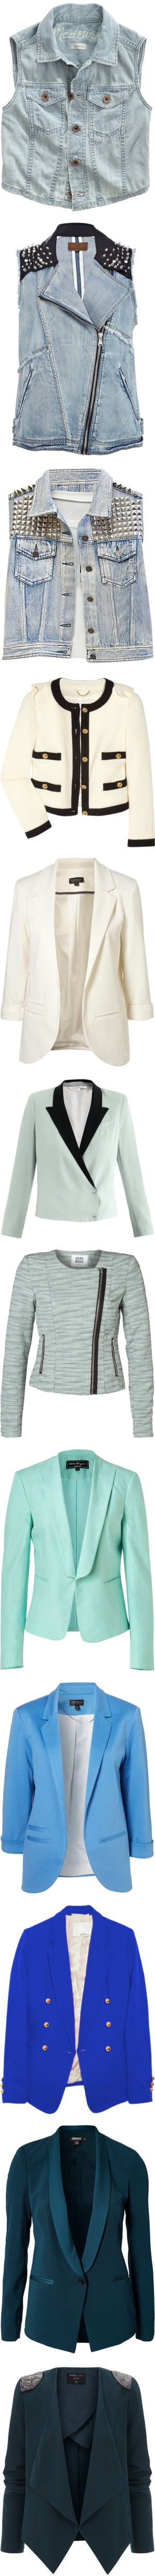 """""""Jackets & sim."""" by kica95 ❤ liked on Polyvore"""